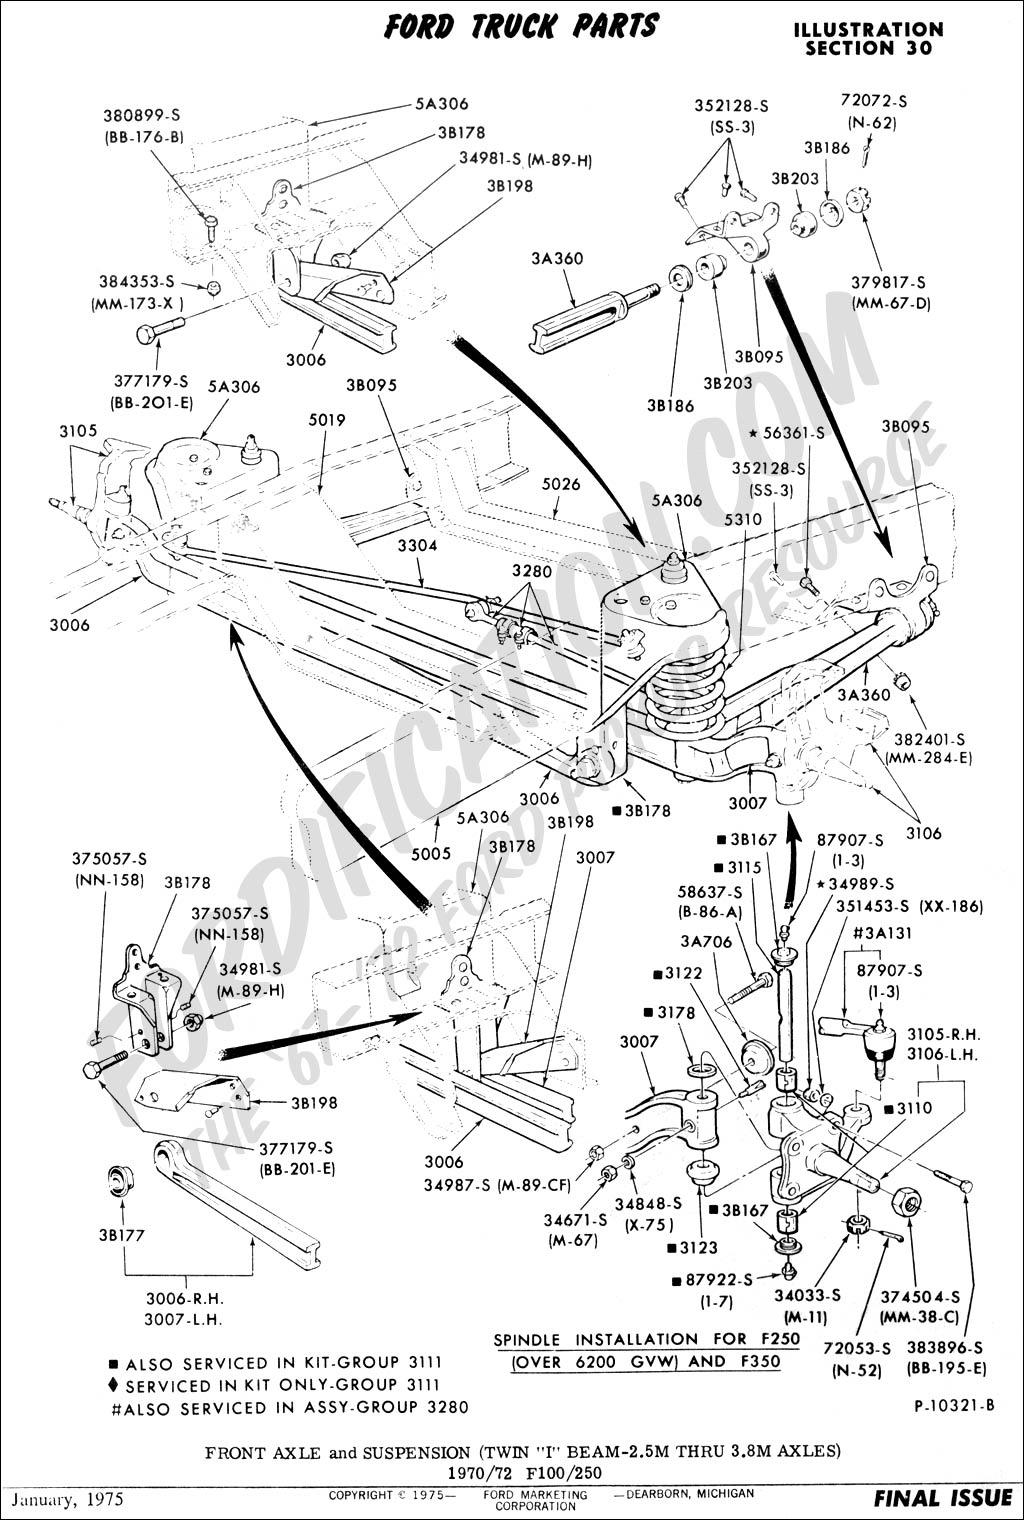 Ford F250 Super Duty Front Axle Part Diagram